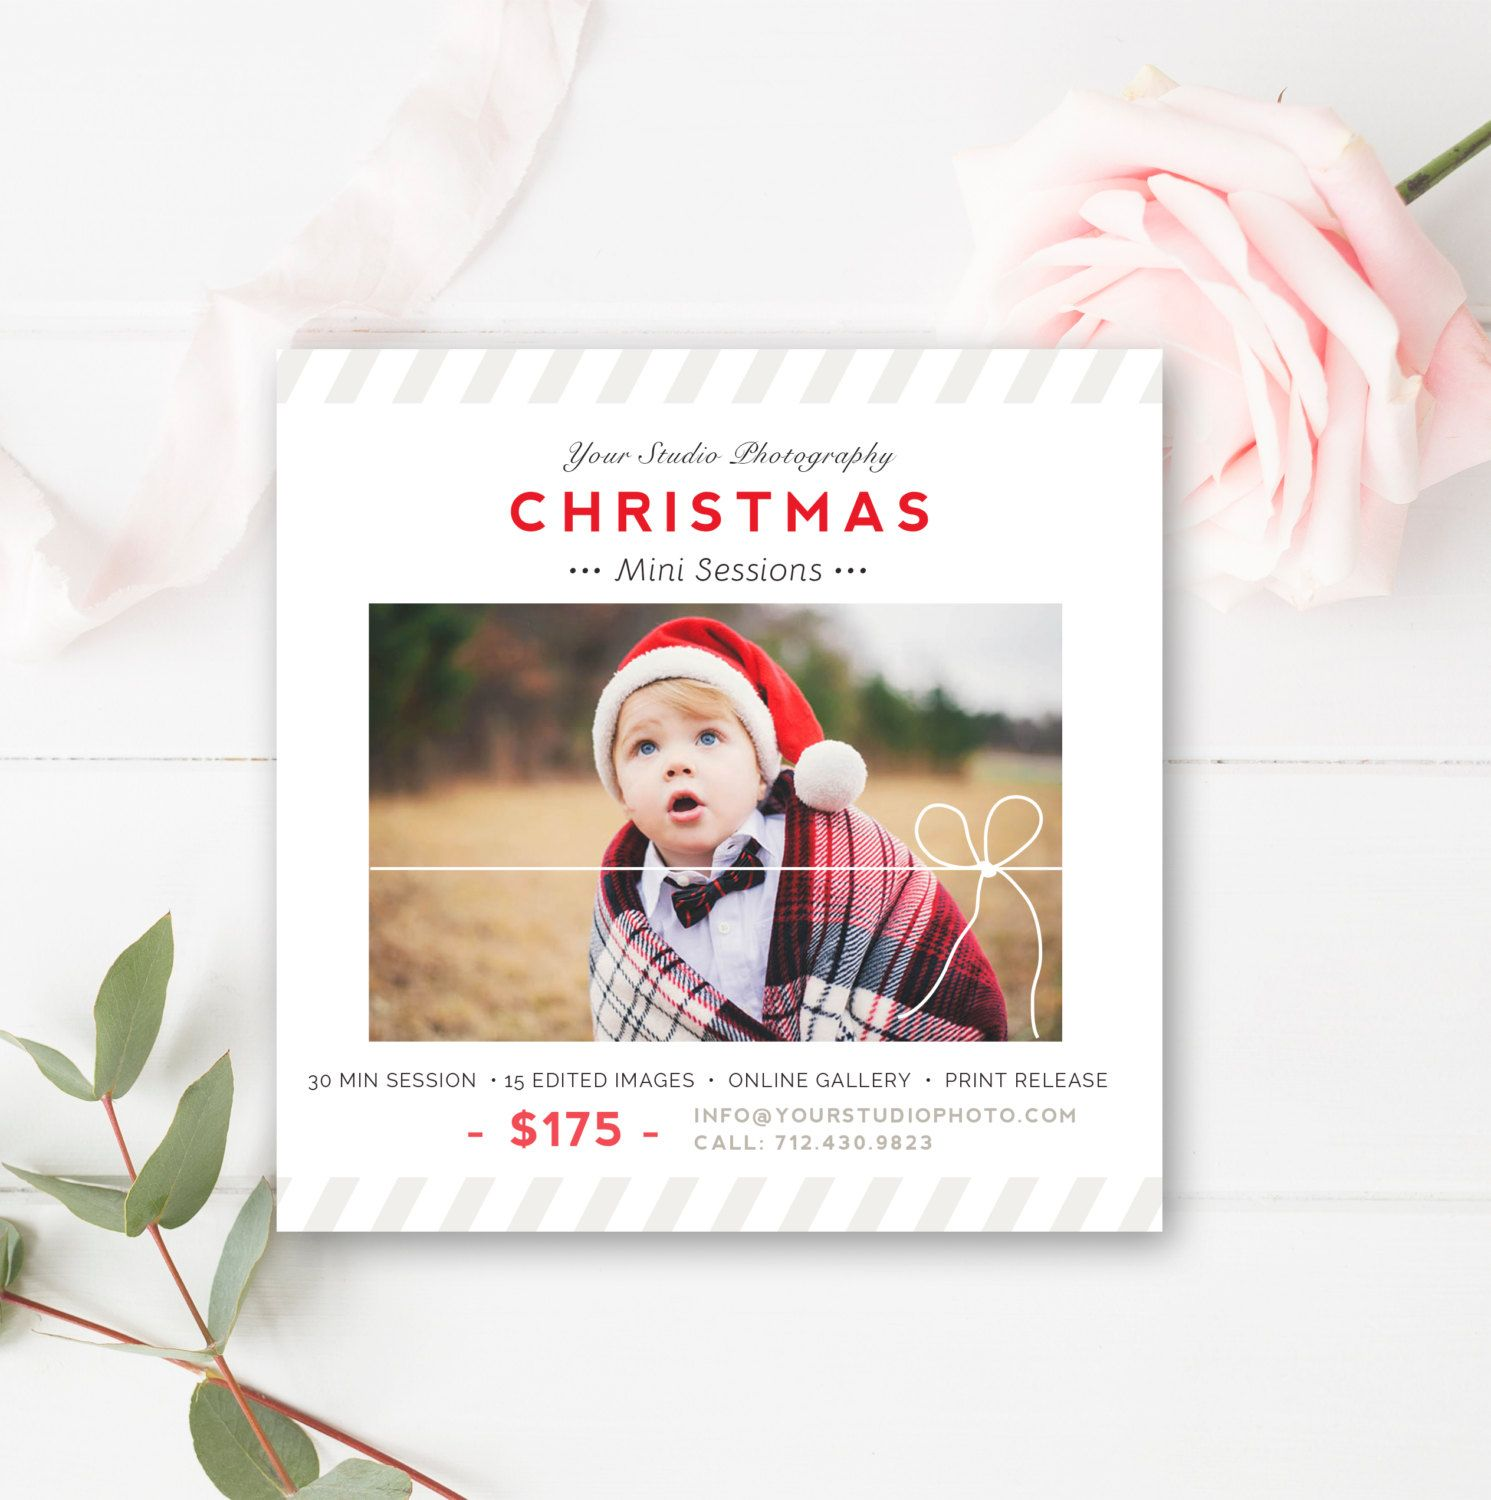 Christmas Mini Session Template - Holiday Mini Session Templates for Photographers - Christmas Marketing Board- INSTANT DOWNLOAD! by ByStephanieDesign on Etsy